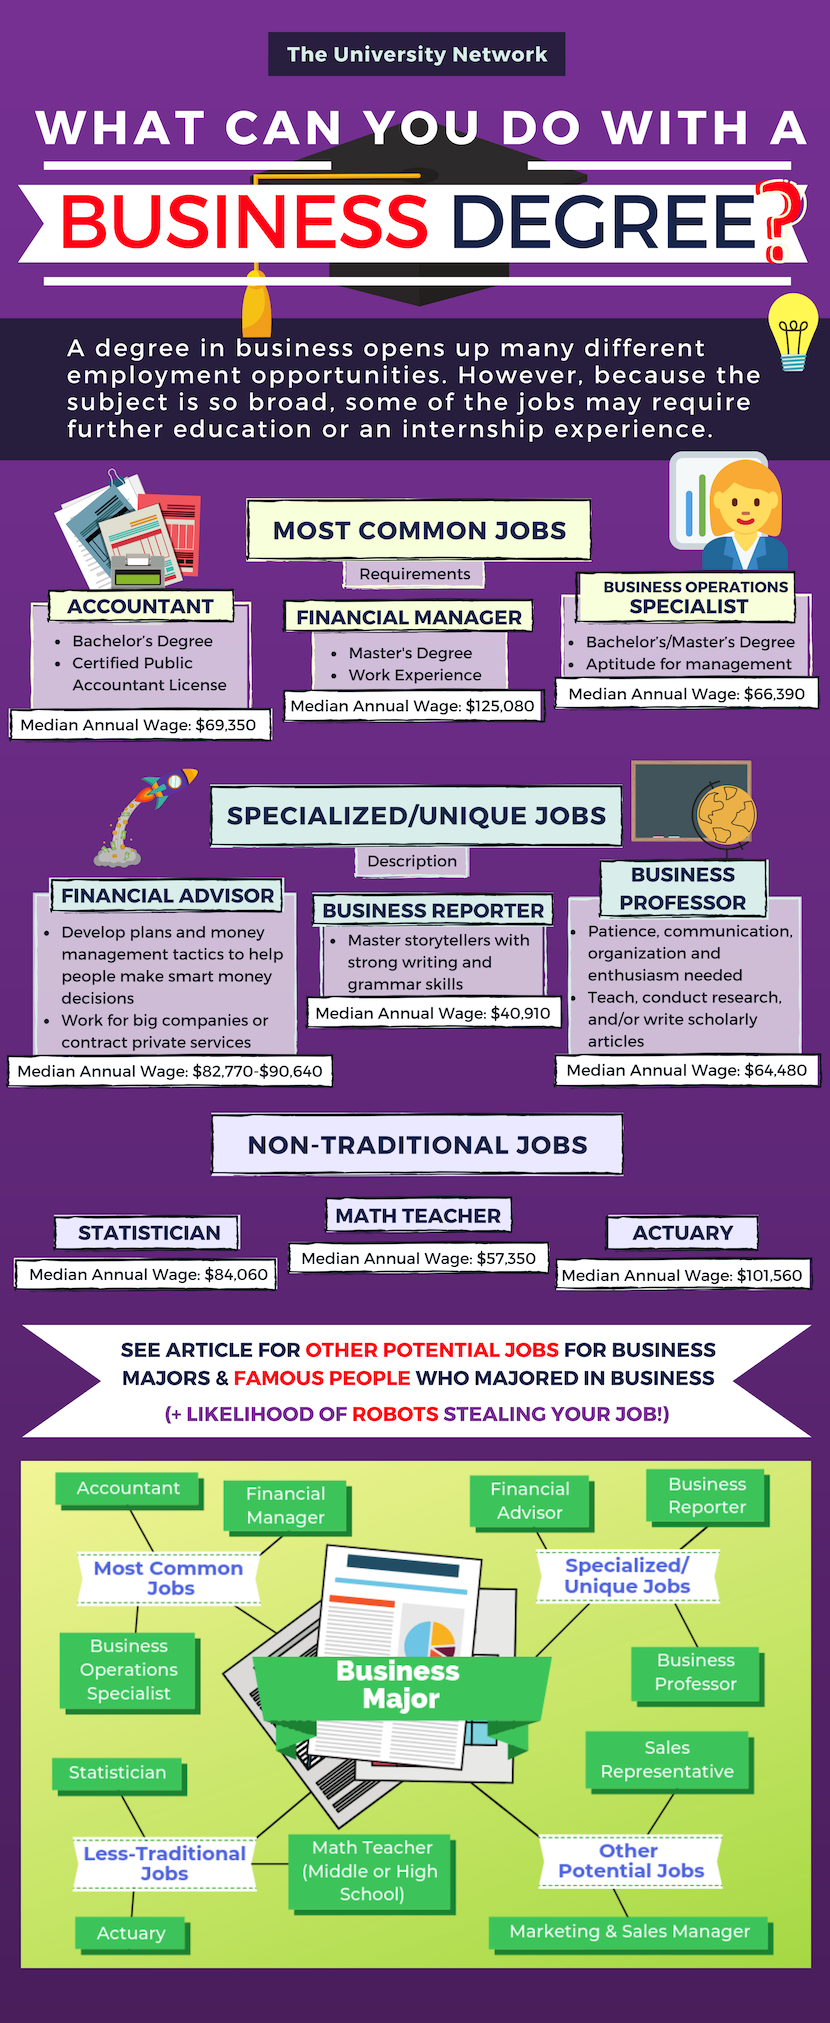 12 Jobs For Business Majors | The University Network | Business management  degree, Business major, Business administration degree